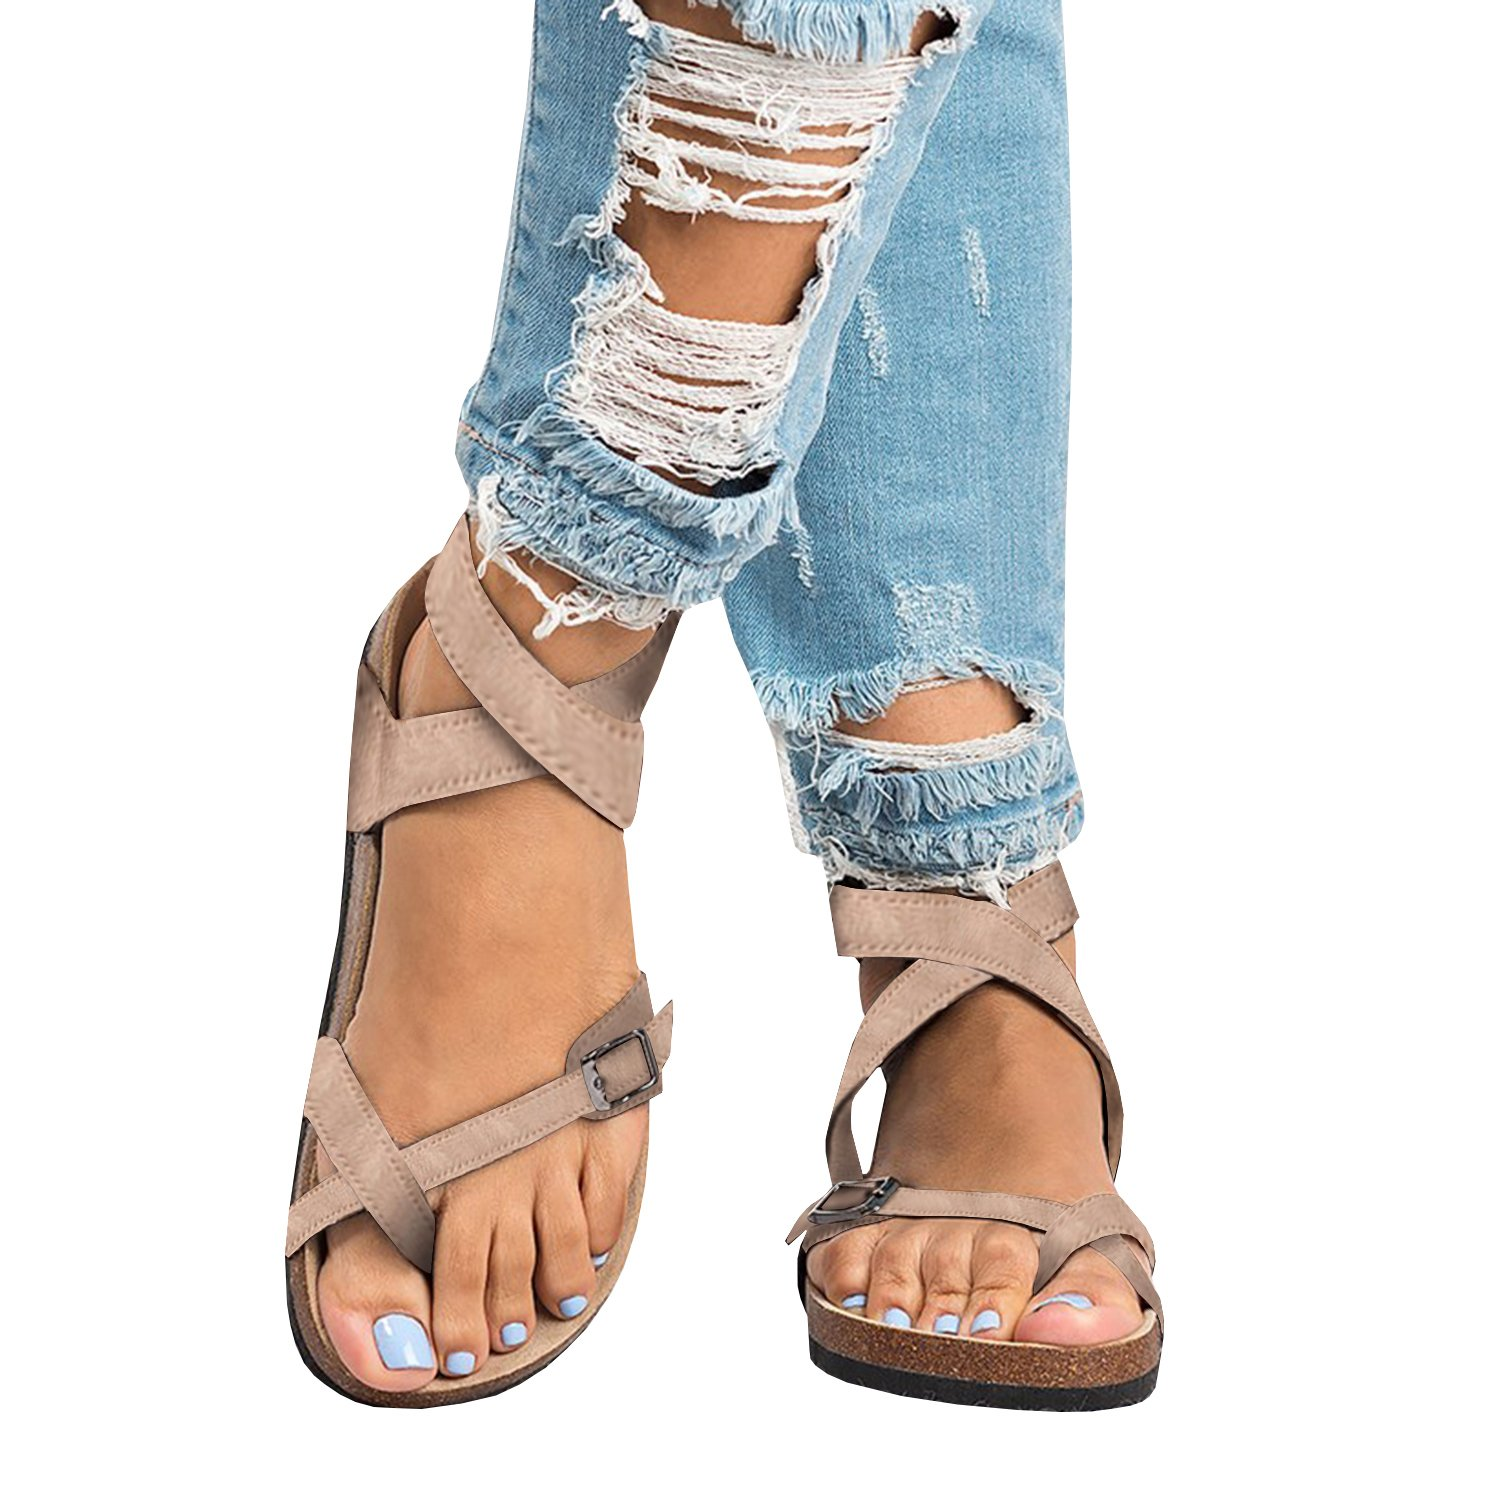 Womens Flat Sandals Ankle Strap Buckle Flip Flop Gladiator Thong Summer Shoes by Laicigo